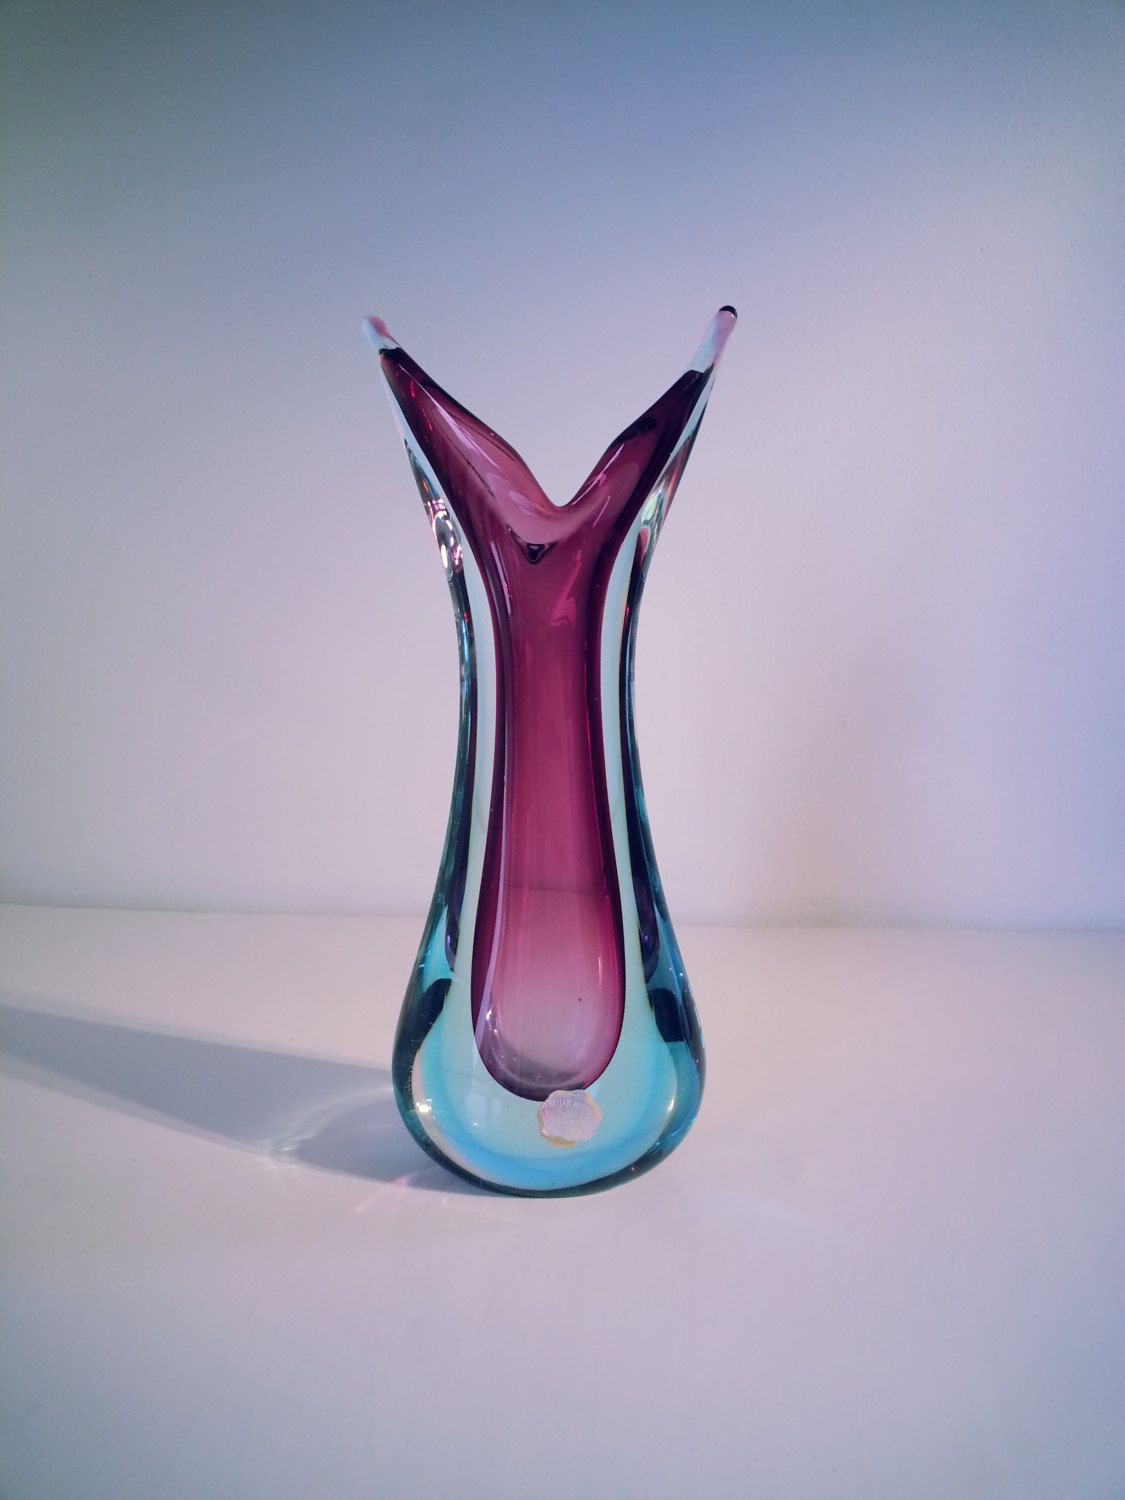 13 Popular Vintage Murano Art Glass Vases